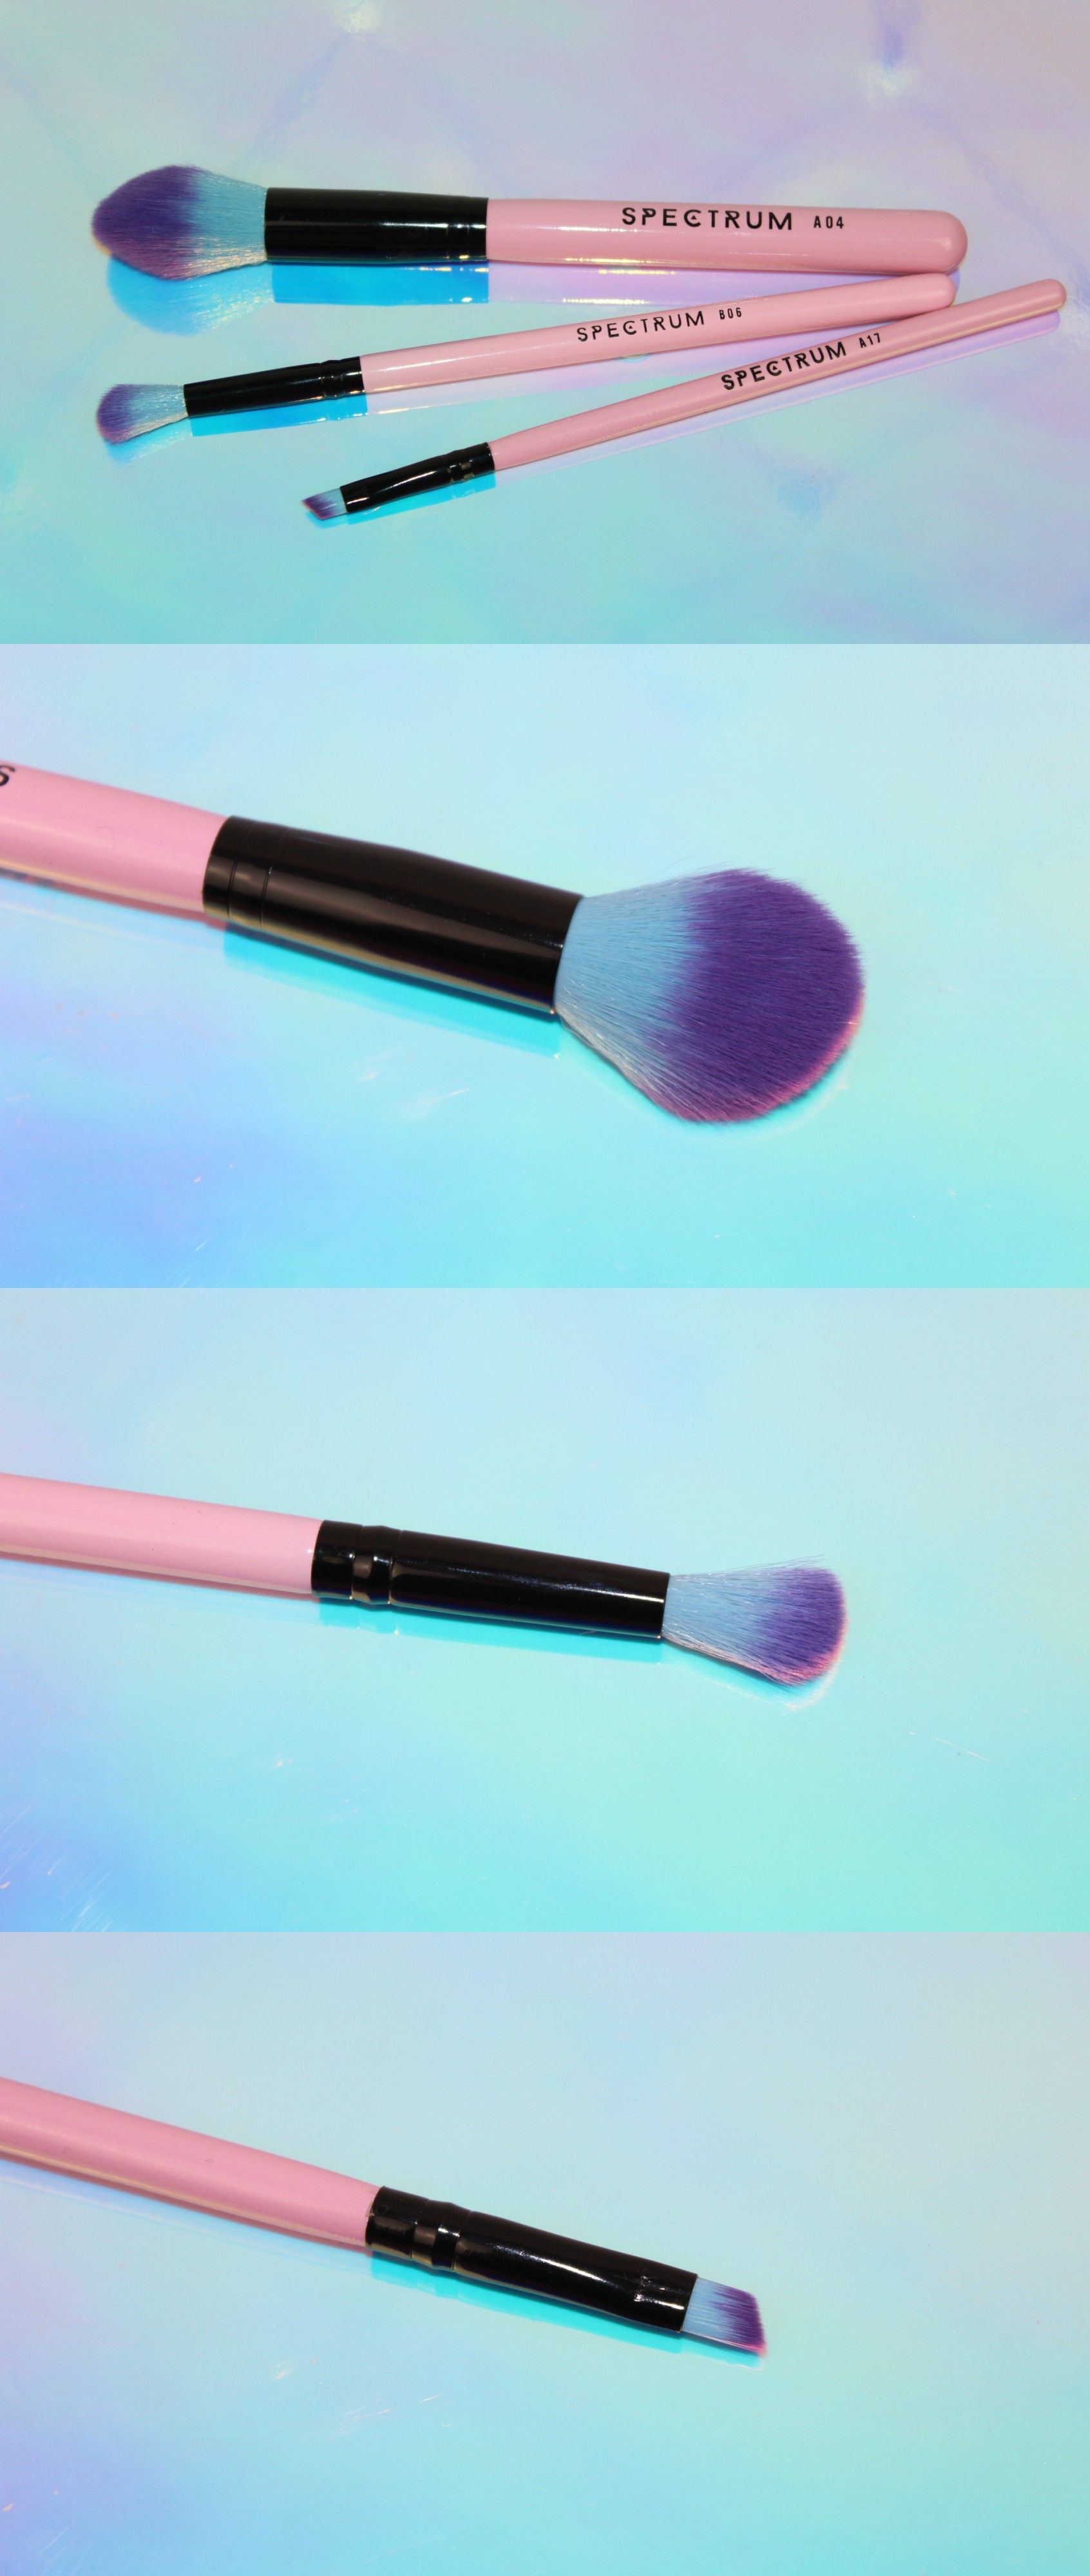 Spectrum Collections Pink Brushes Review and Photos (With